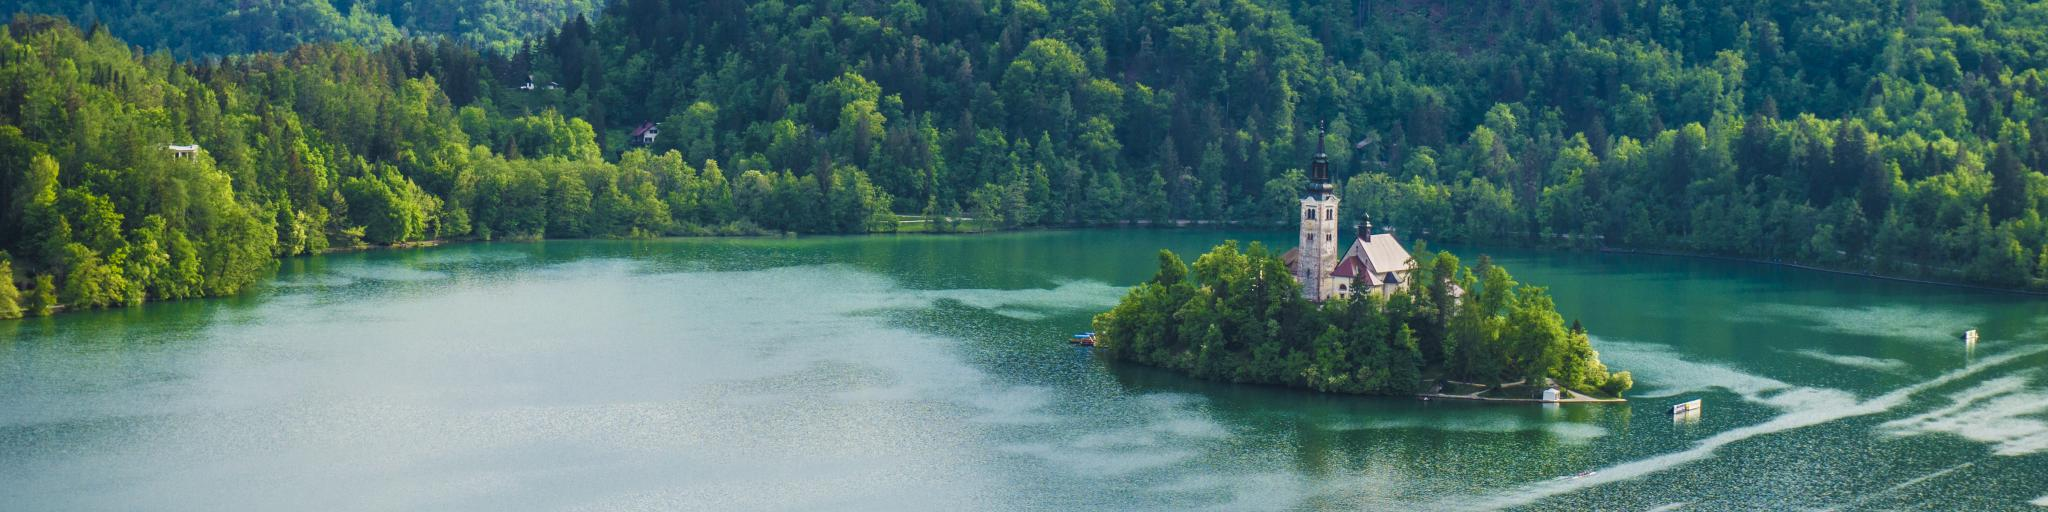 Bled Castle sits on an island in the middle of Slovenia's scenic Lake Bled